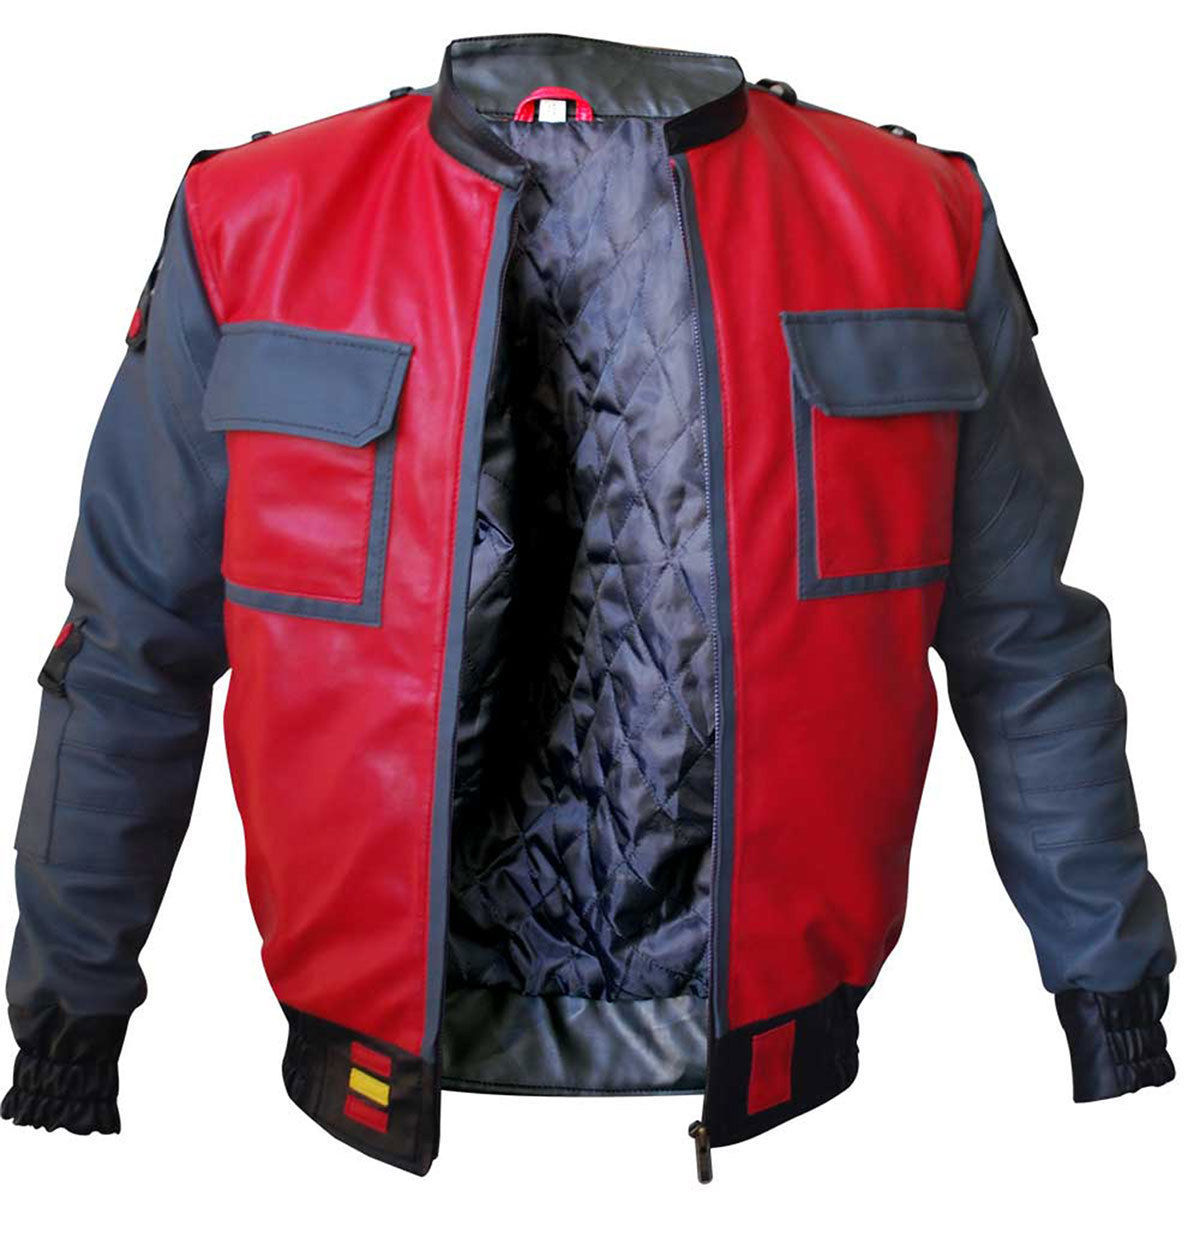 Primary image for BTTF Jacket Marty McFly Back To The Future 2015 Bomber Costume Leather Jacket